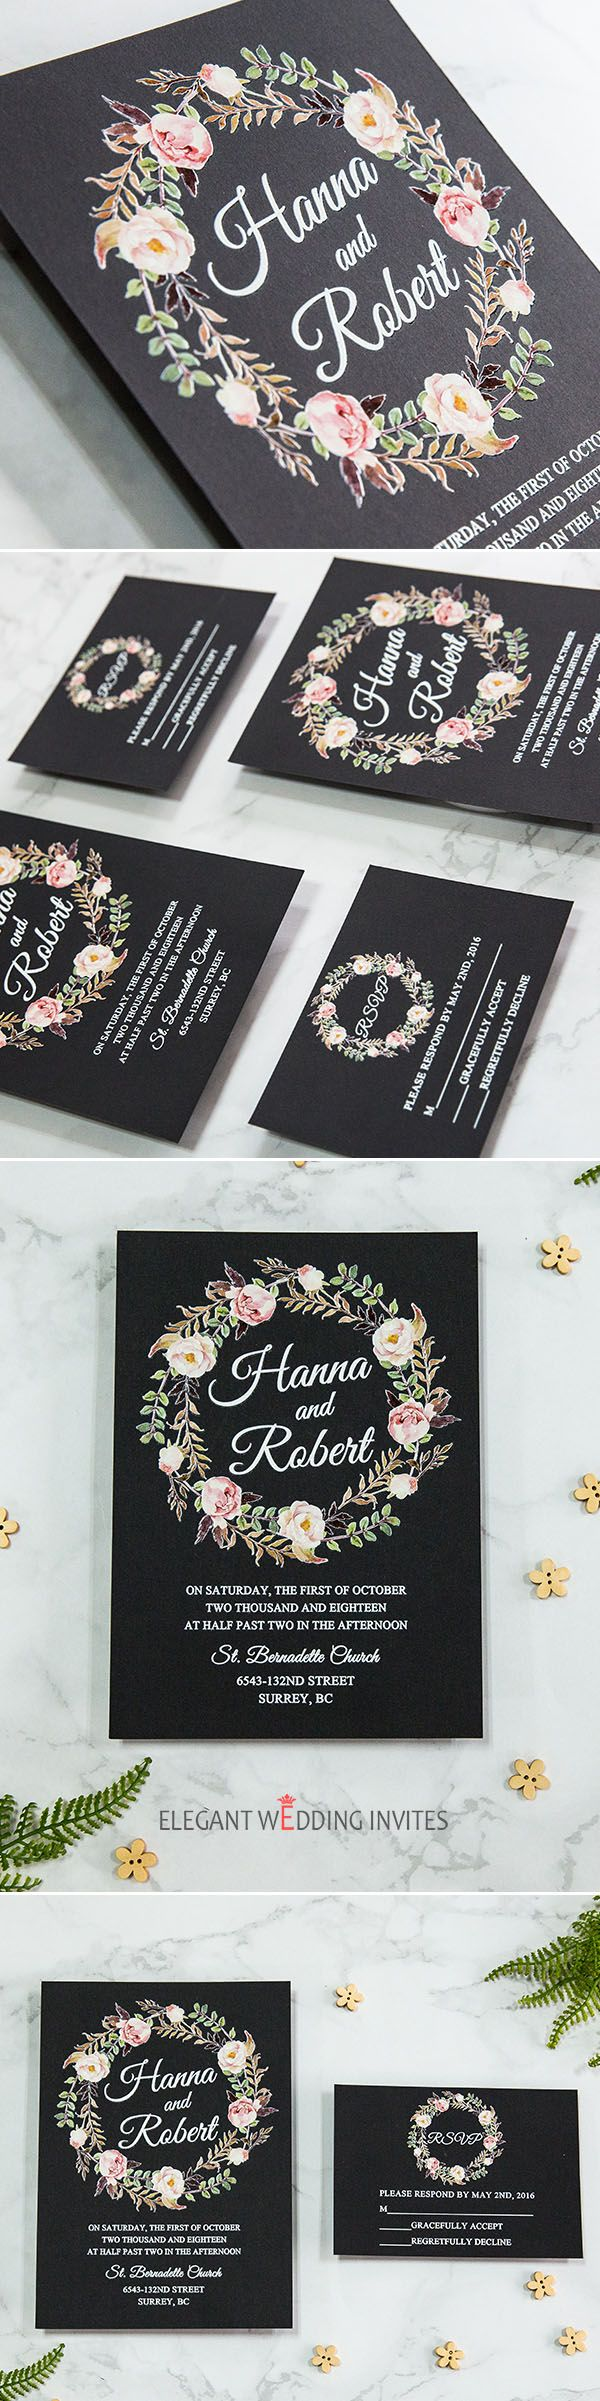 how to write muslim wedding invitation card%0A feel the shape of flowers stunning UV printing floral wreath wedding  invitation card as low